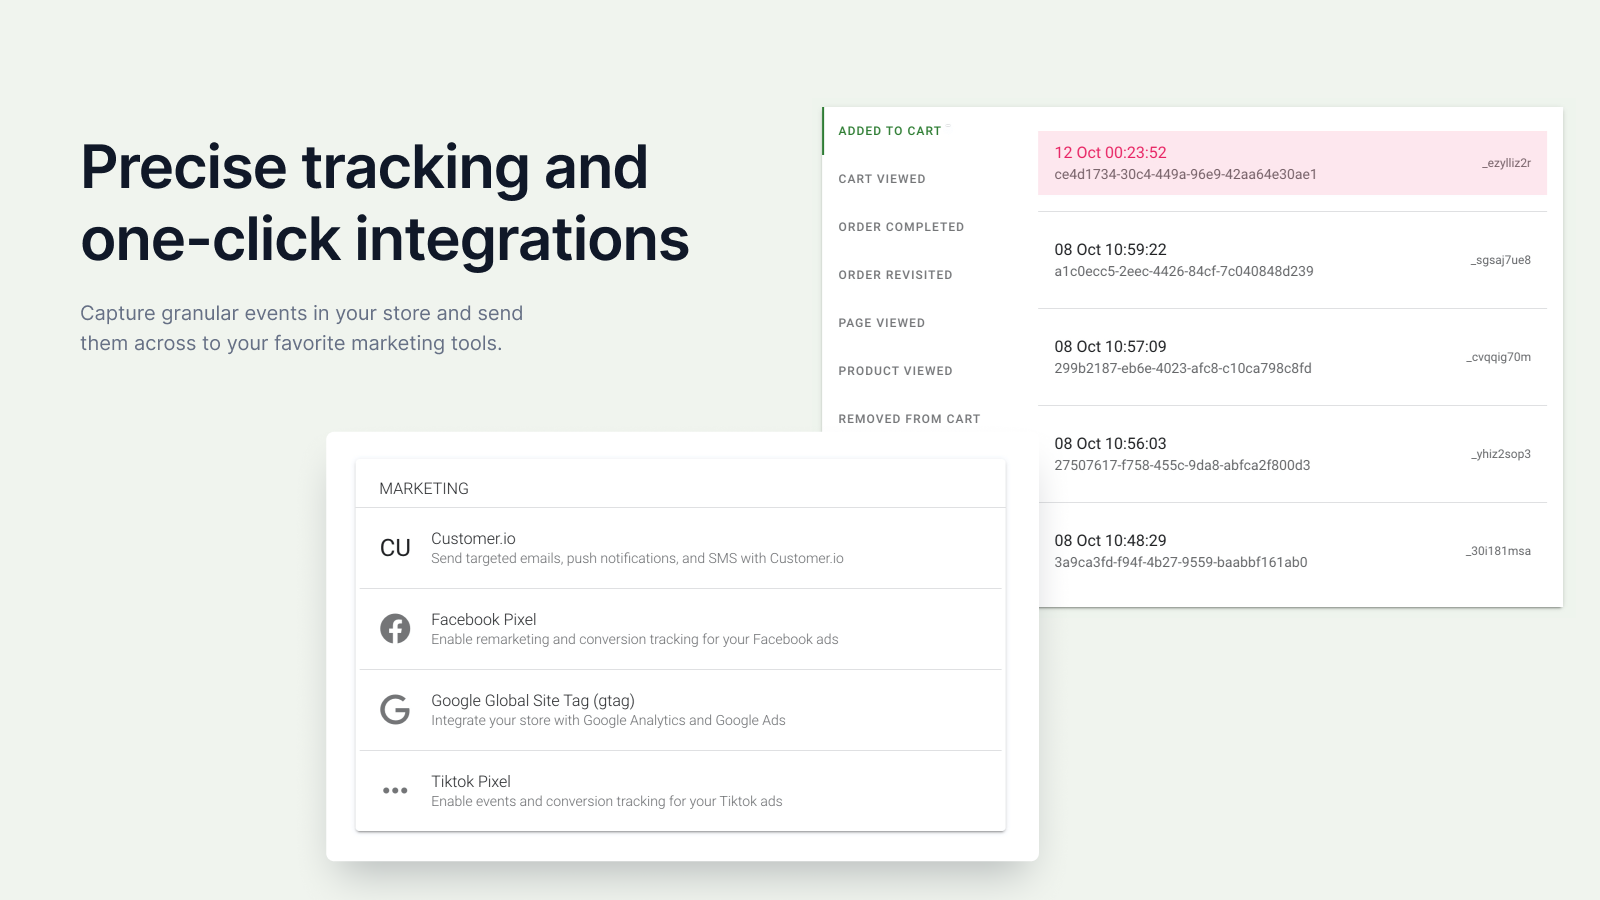 Tracking and integrations